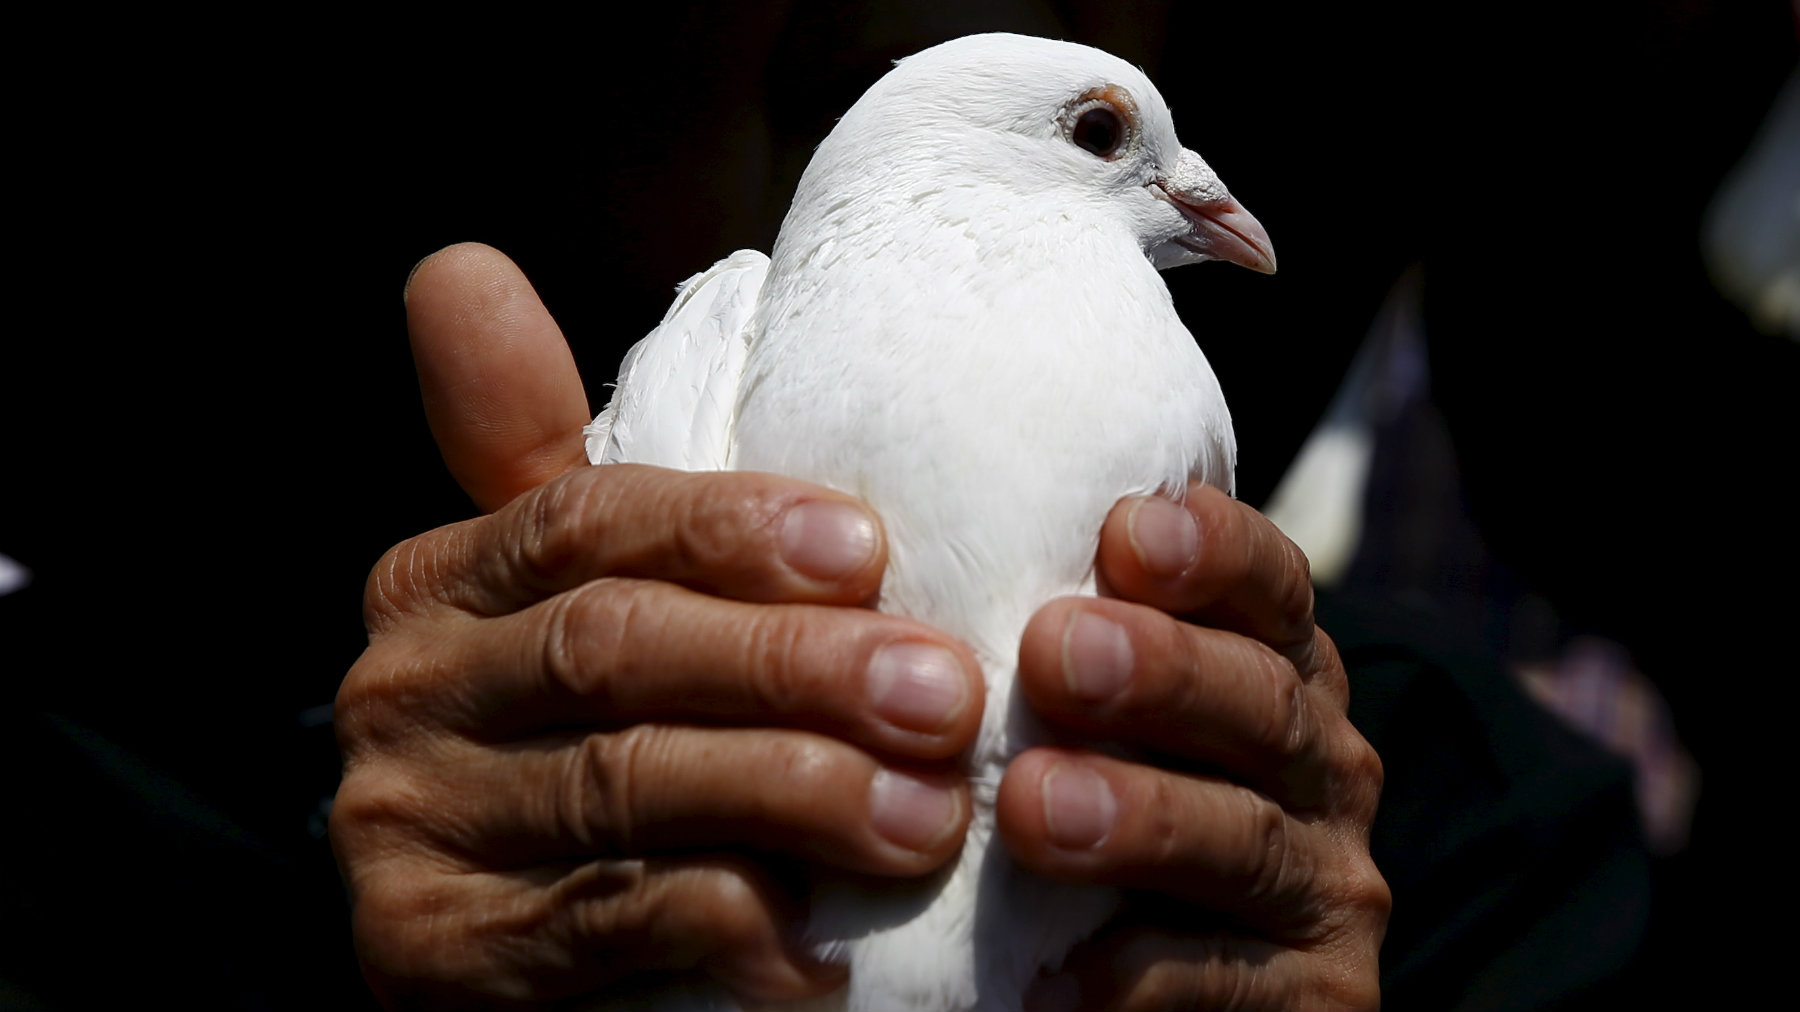 A woman holds a dove as a symbol of peace at Yasukuni Shrine in Tokyo on the anniversary of Japan's surrender in World War Two.